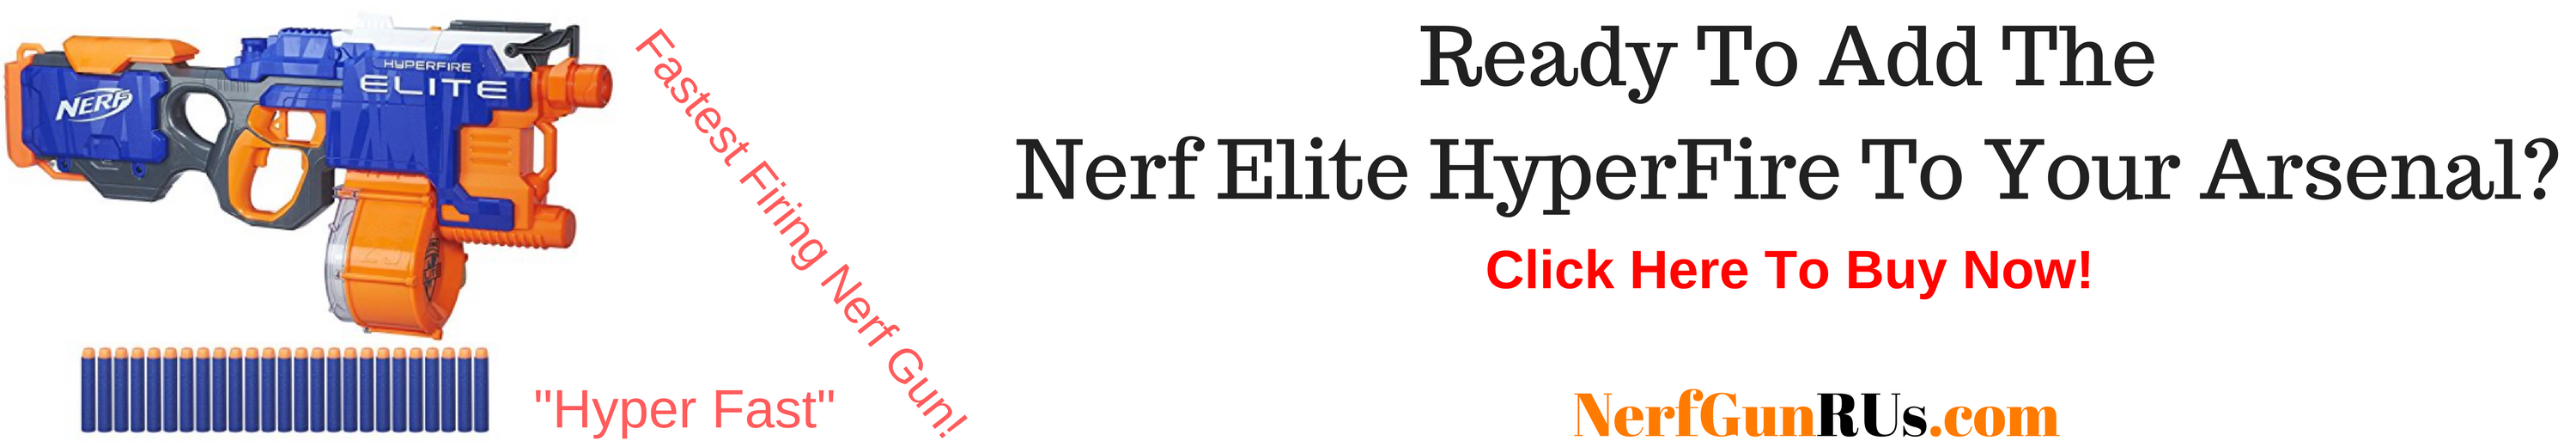 Ready To Add The Nerf Elite HyperFire To Your Arsenal   NerfGunRUs.com